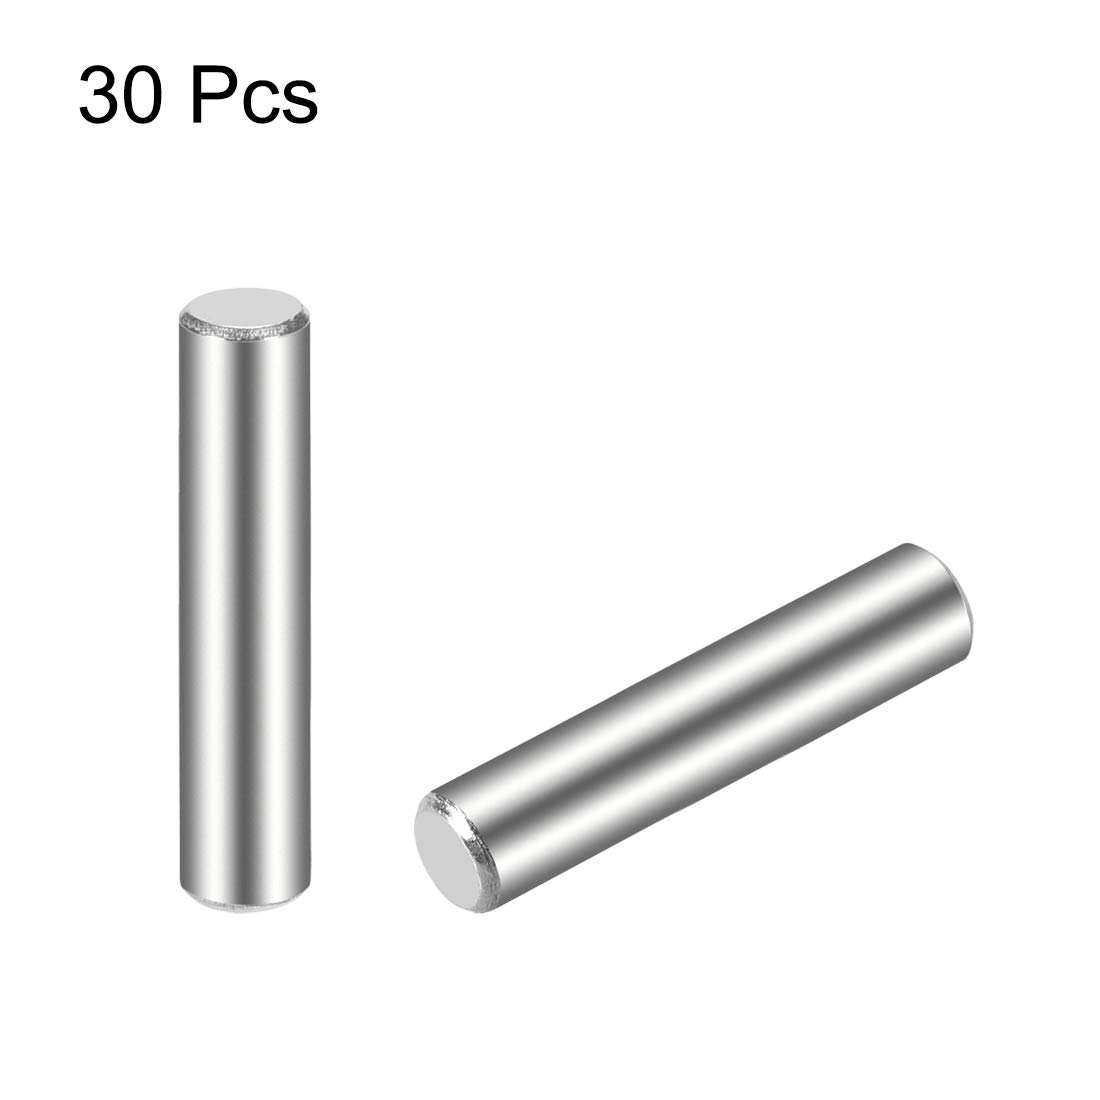 sourcing map 30Pcs Goujon Broche 304 Acier Inoxydable Cylindrique /Étag/ère Support Broche 2.5mm x 25mm